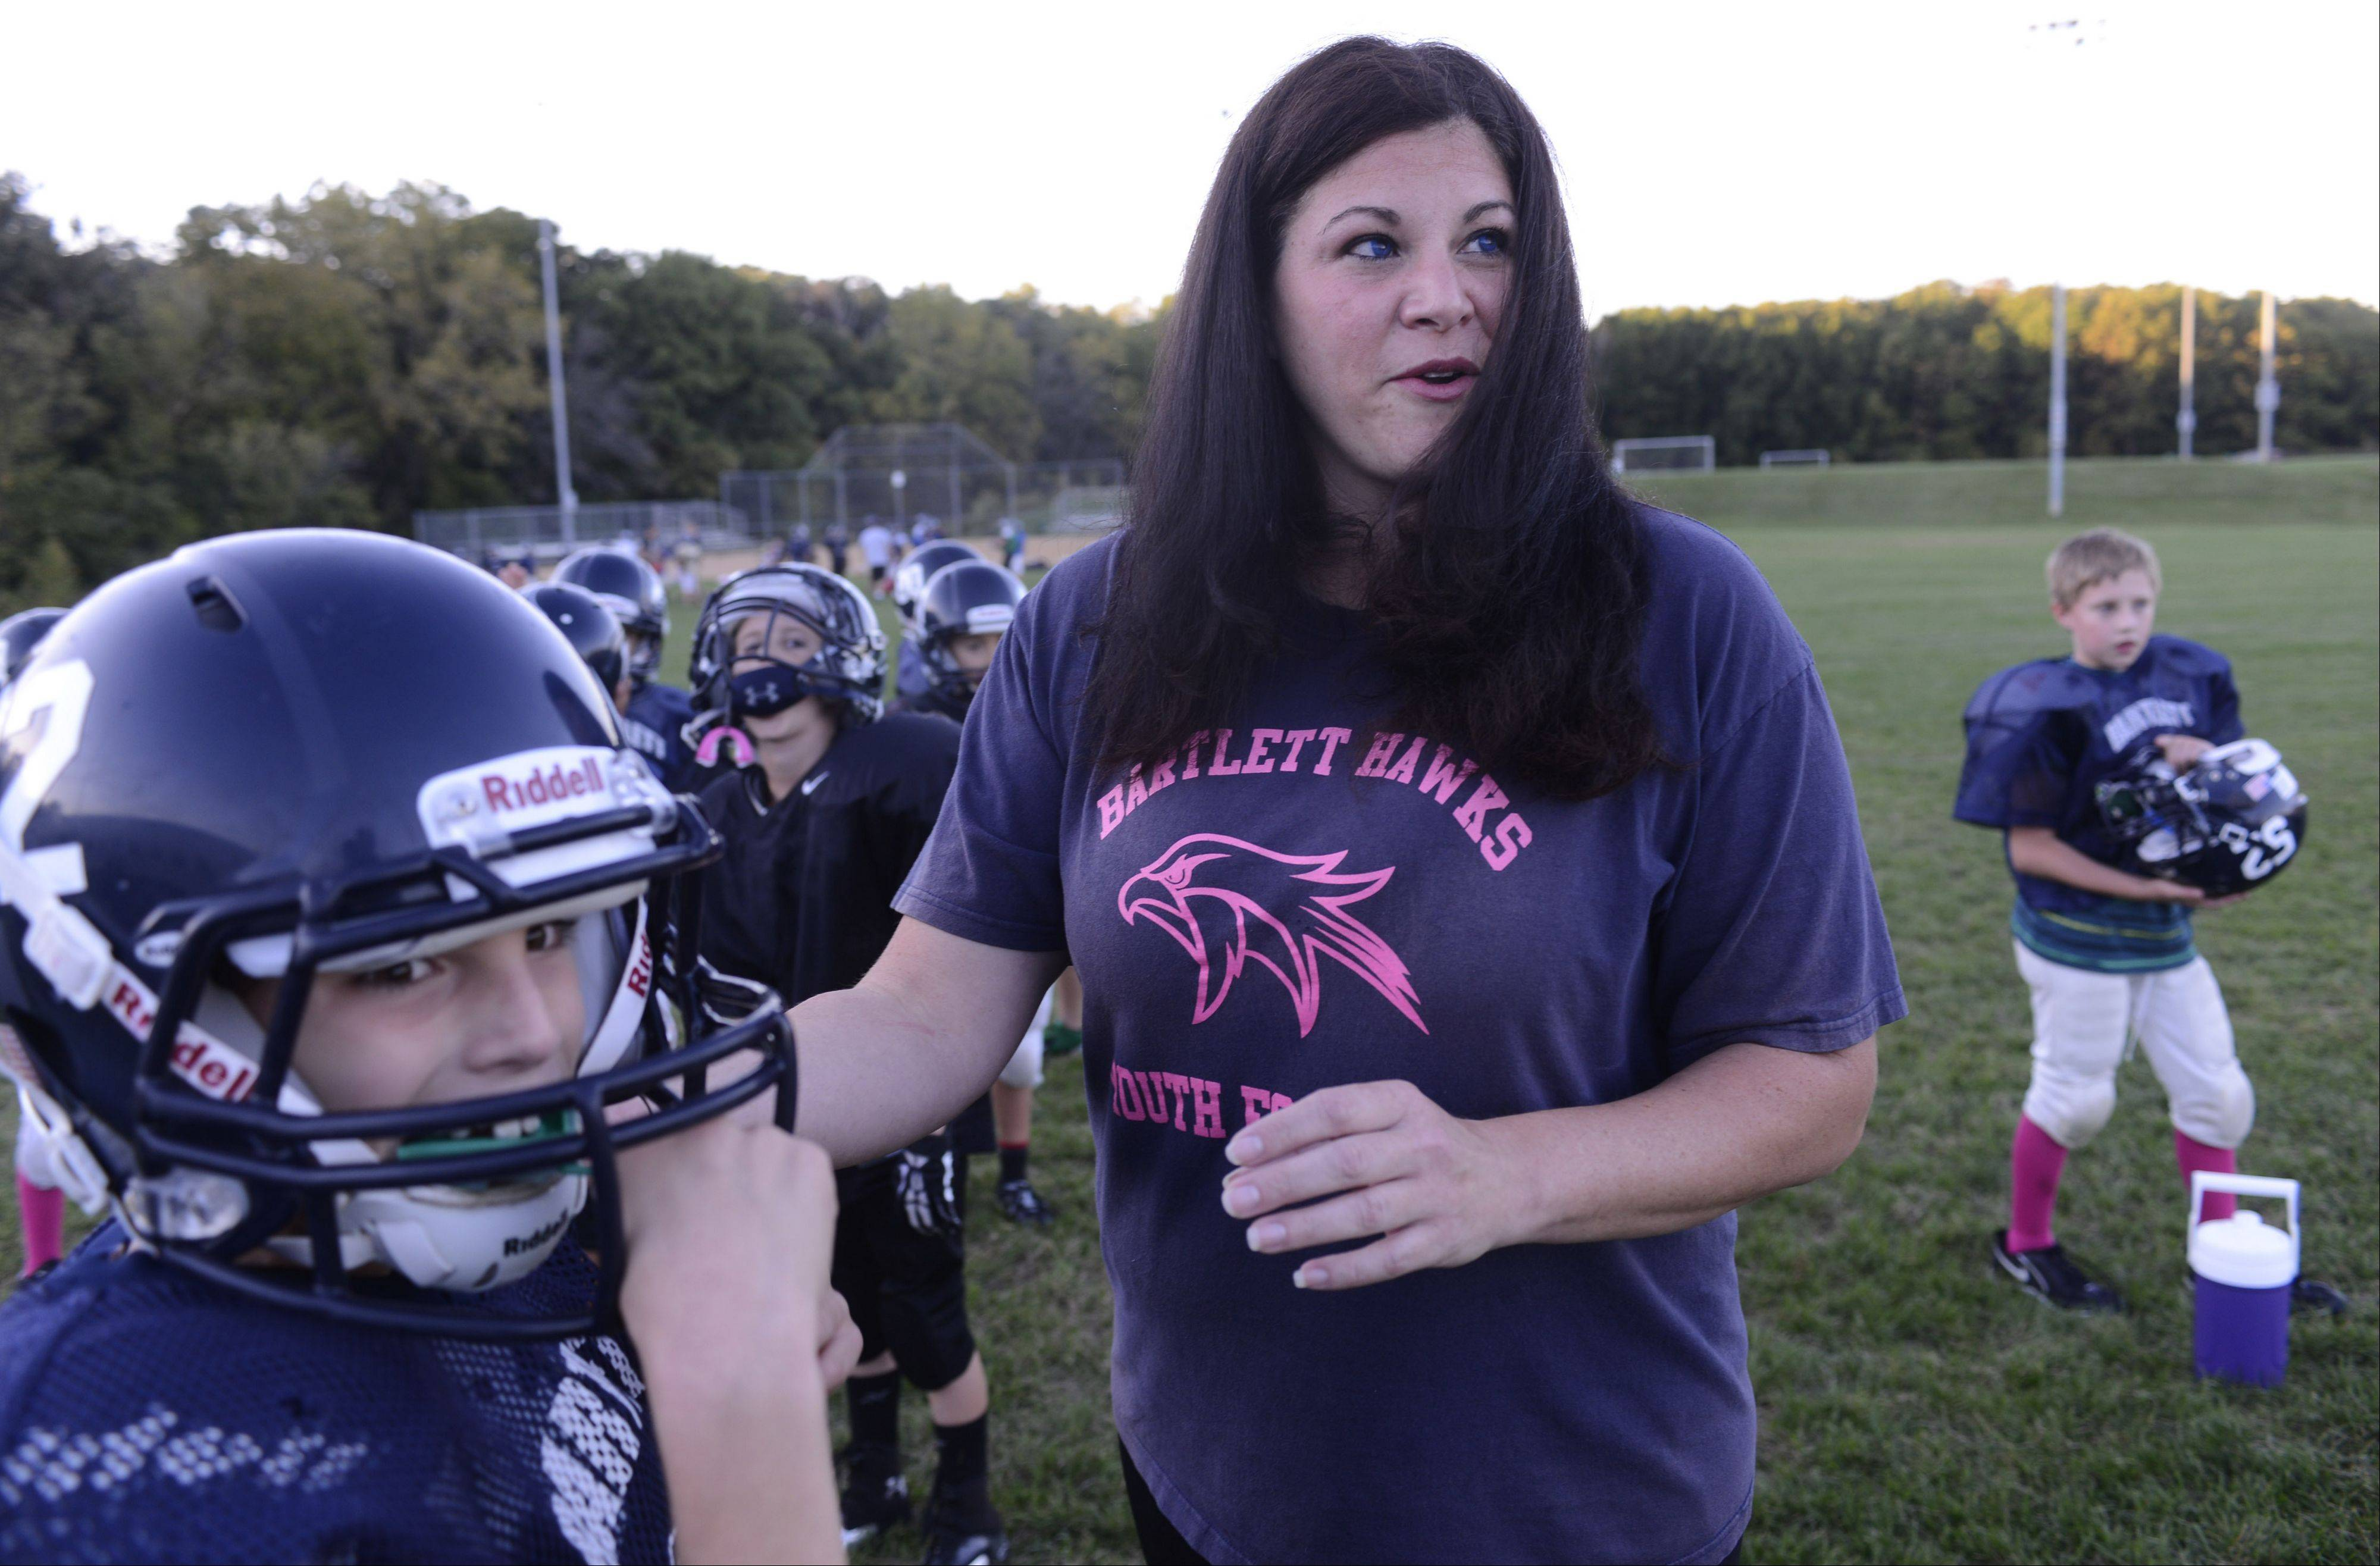 Jennifer Kmiecik of Bartlett helps her son Brandon, 9, snap on his helmet during a Bartlett Hawks youth football practice Wednesday. Kmiecik won $1,000 to go toward helmets and equipment after numerous Bartlett Hawks families nominated her for the Courtyard Marriott's Inspire Greatness Program.